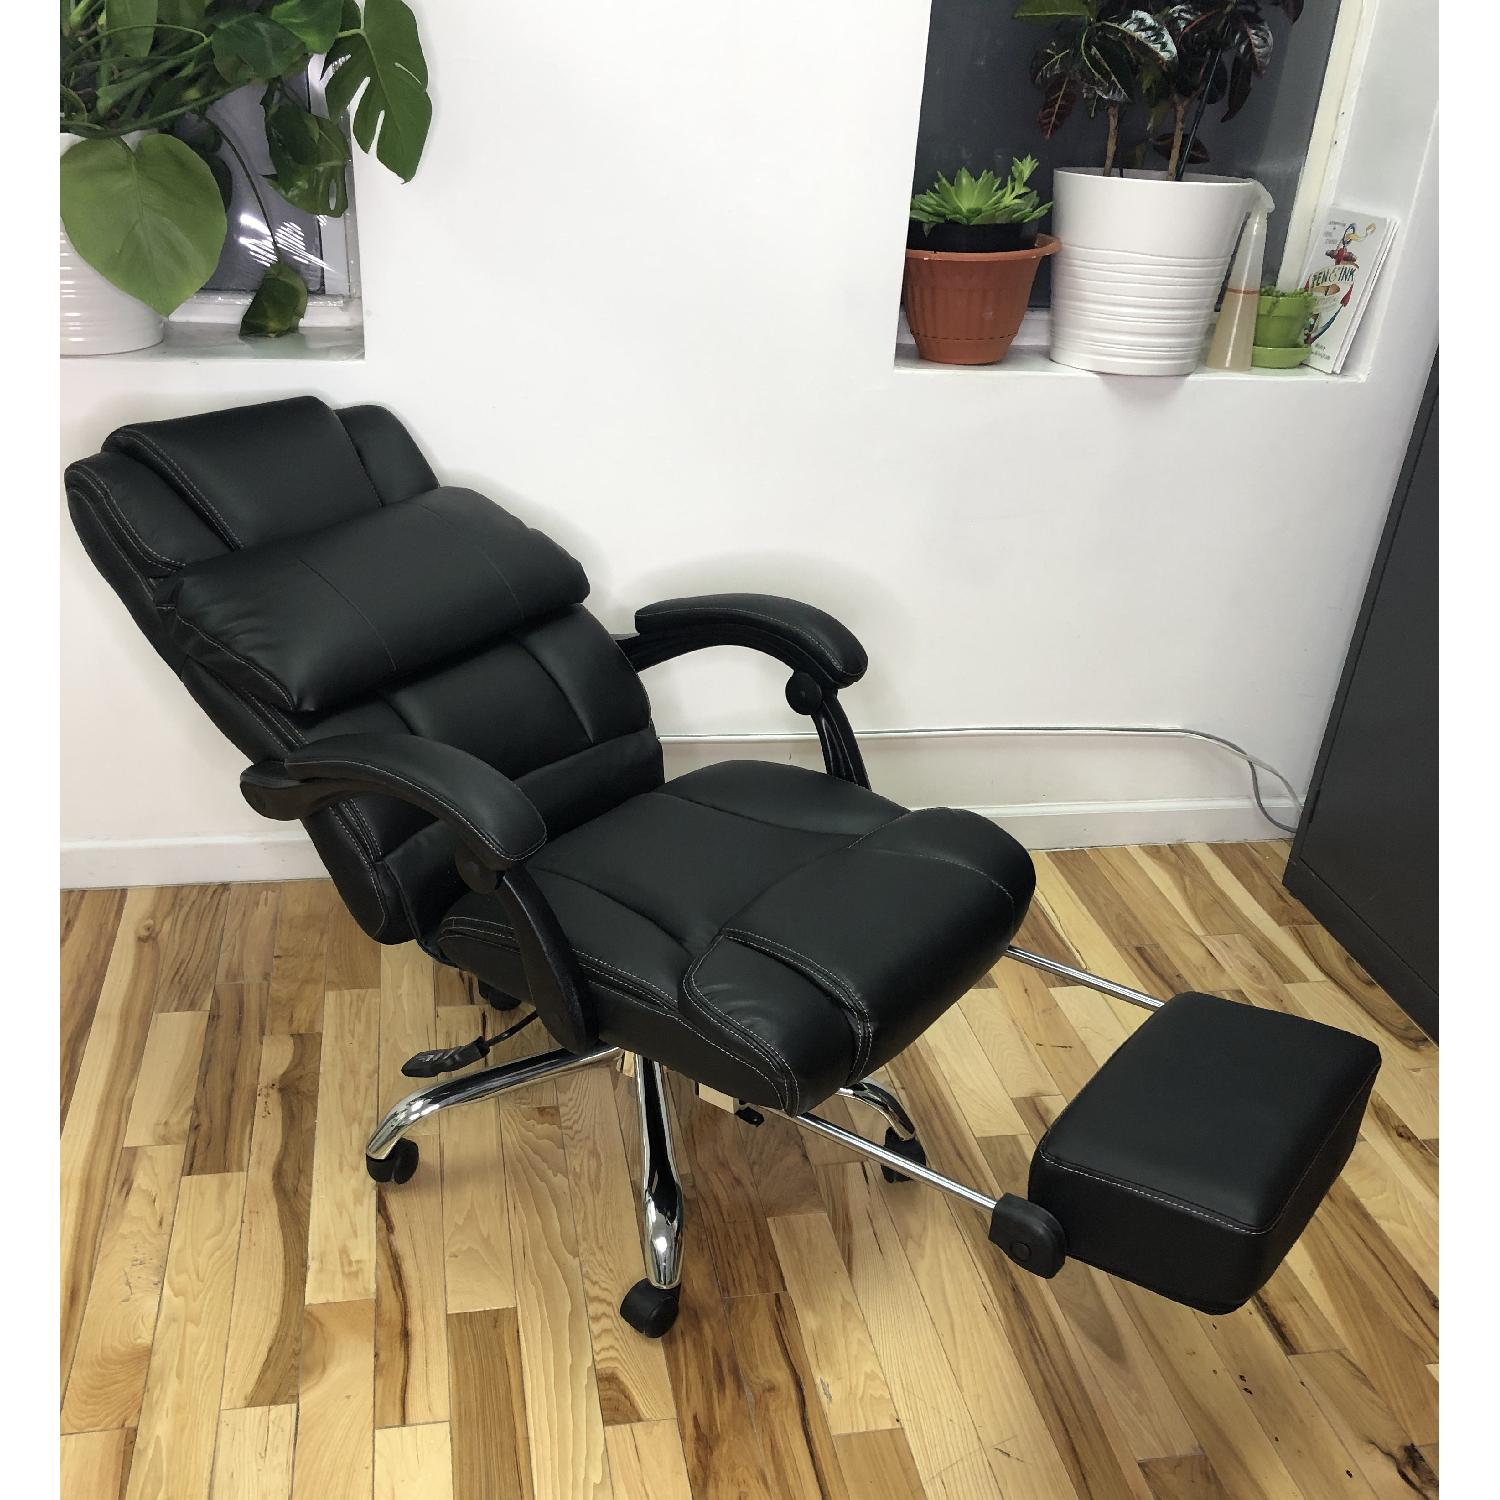 Merax Reclining Office/Gaming Chair-7